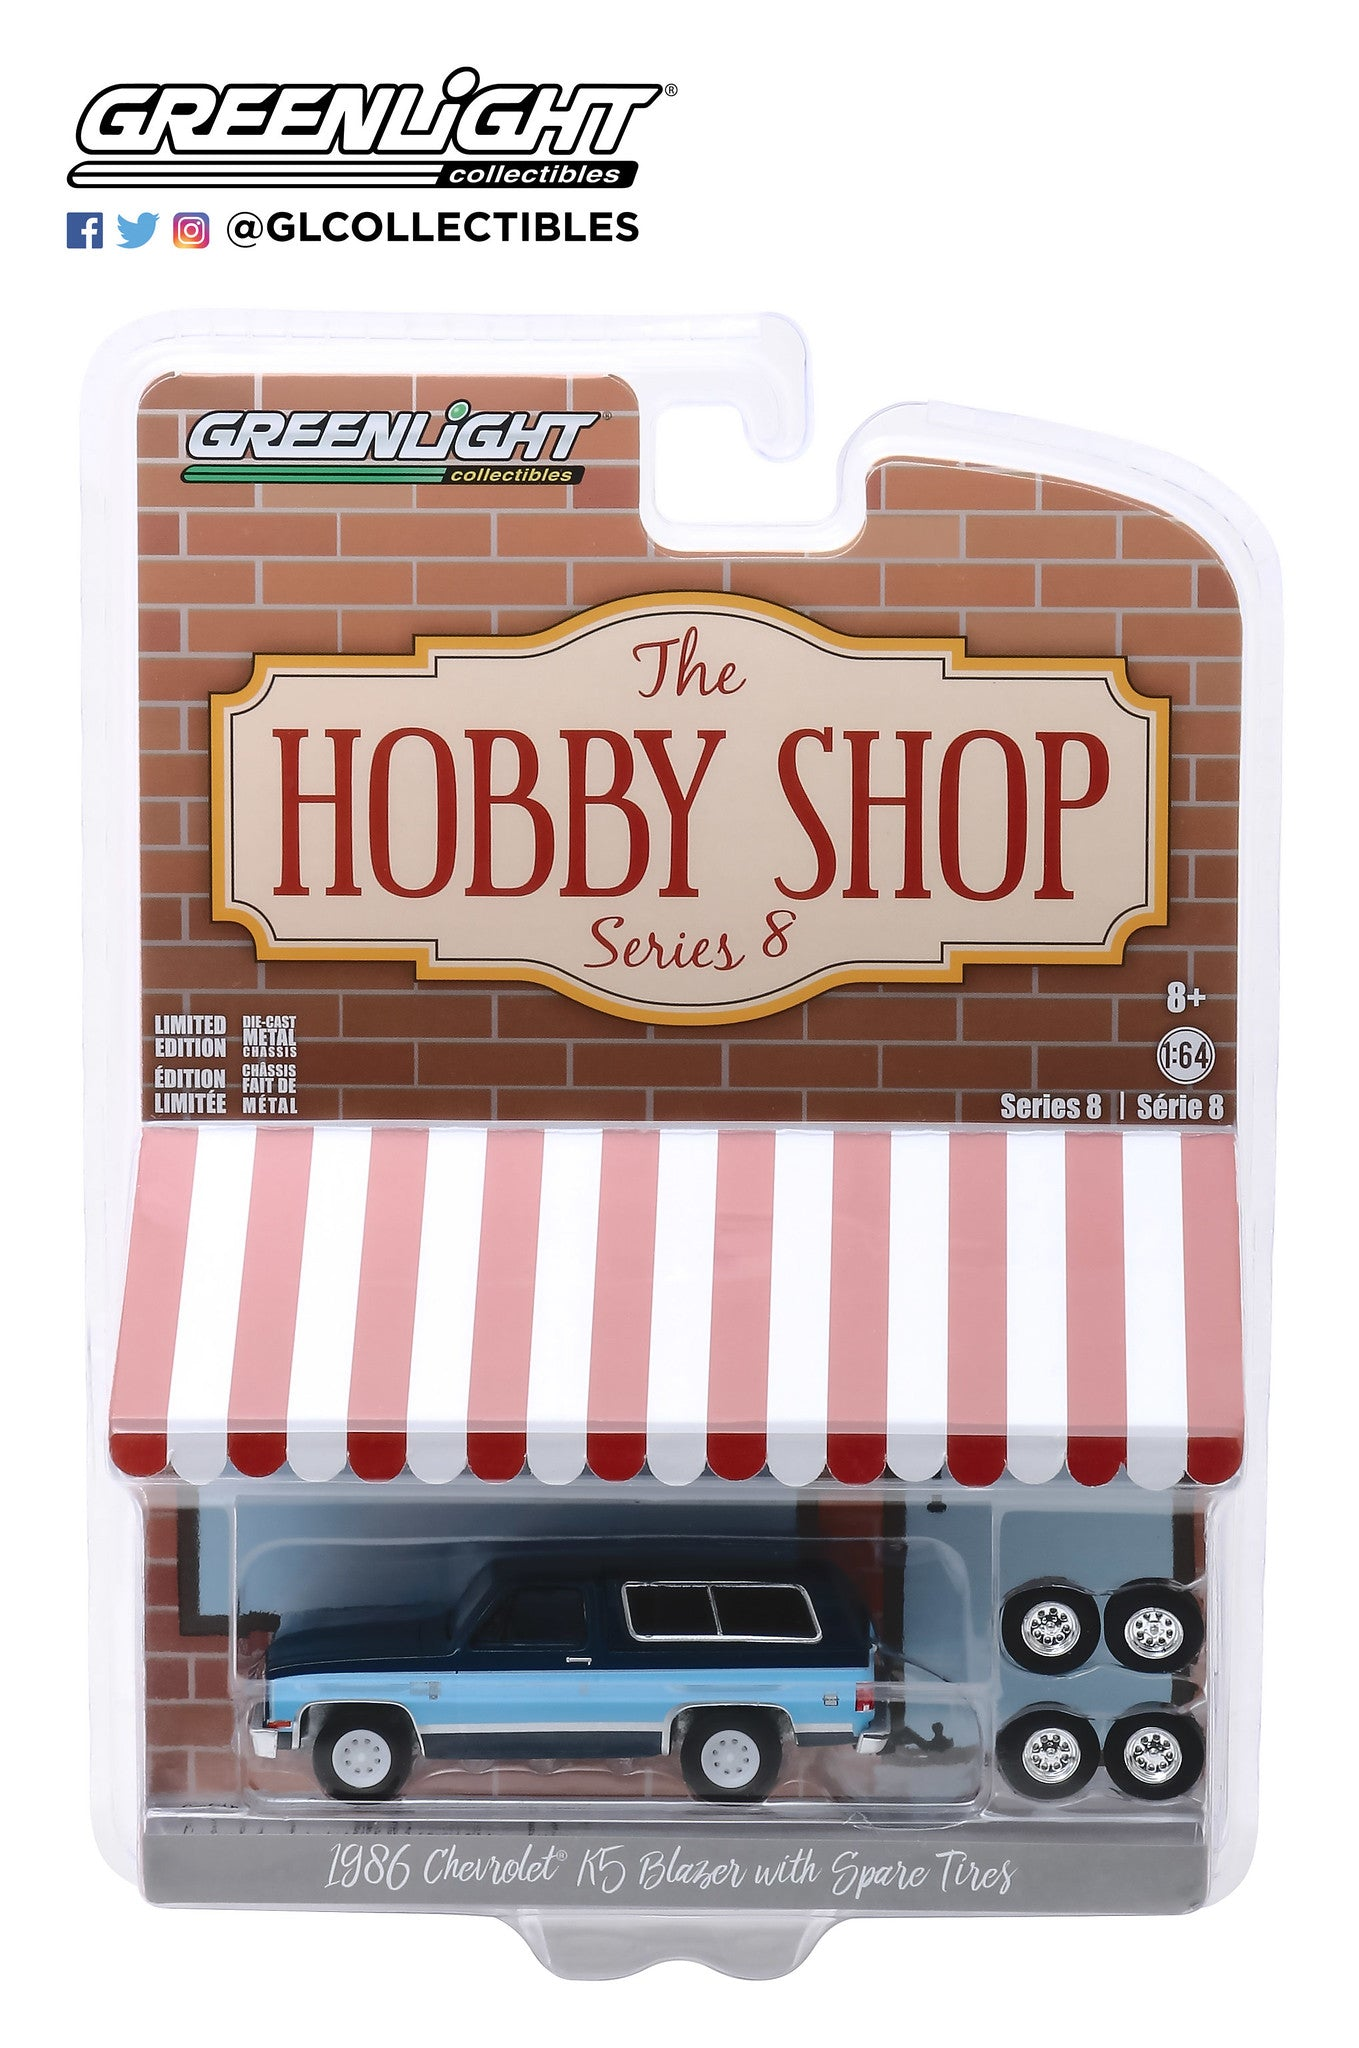 GreenLight 1:64 The Hobby Shop Series 8 - 1986 Chevrolet K5 Blazer with Spare Tires 97080-E